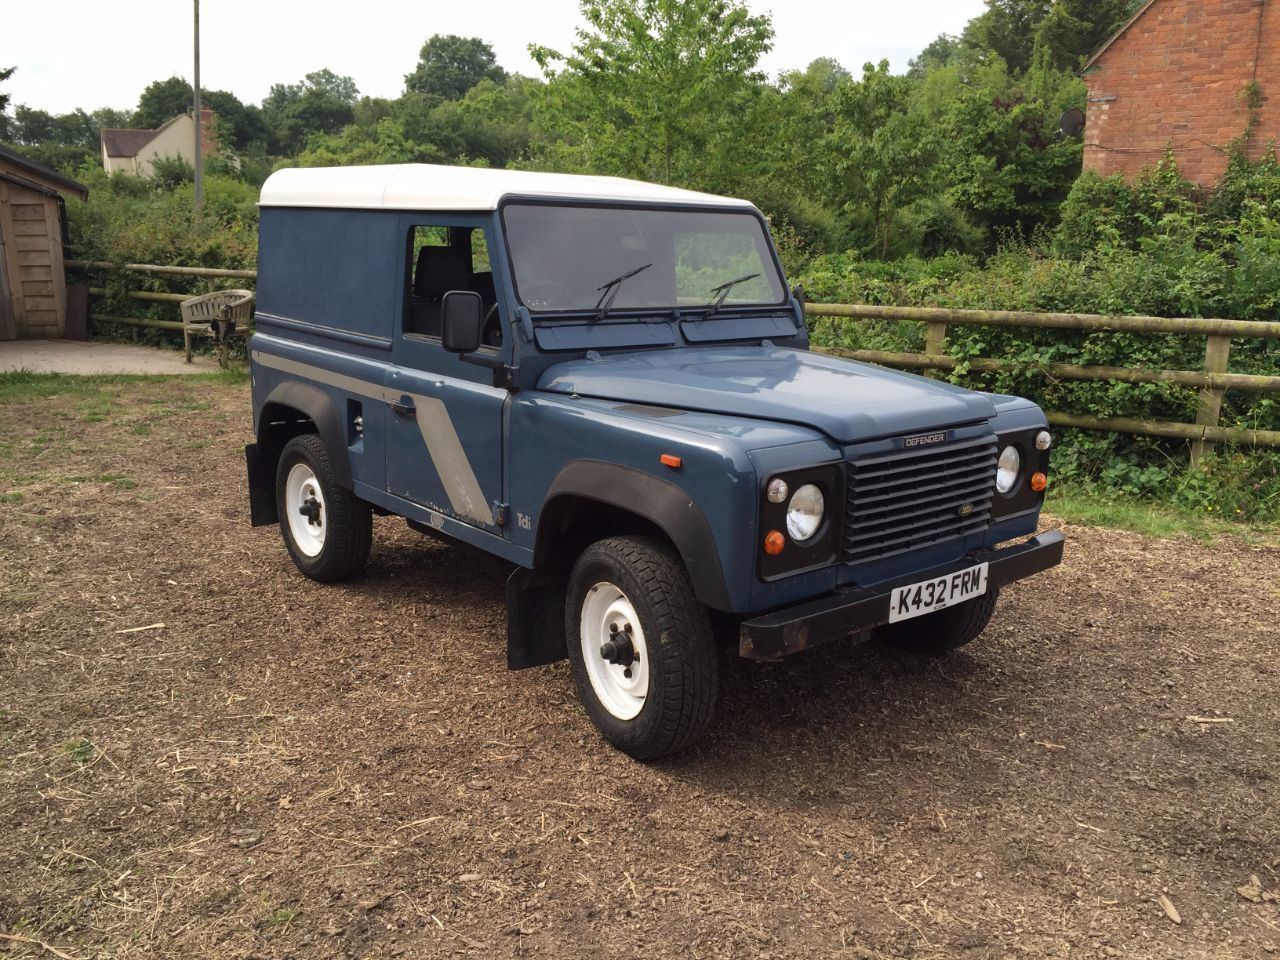 used land rover defender 90 defender turbo 25 200 for sale in gloucester gloucestershire. Black Bedroom Furniture Sets. Home Design Ideas